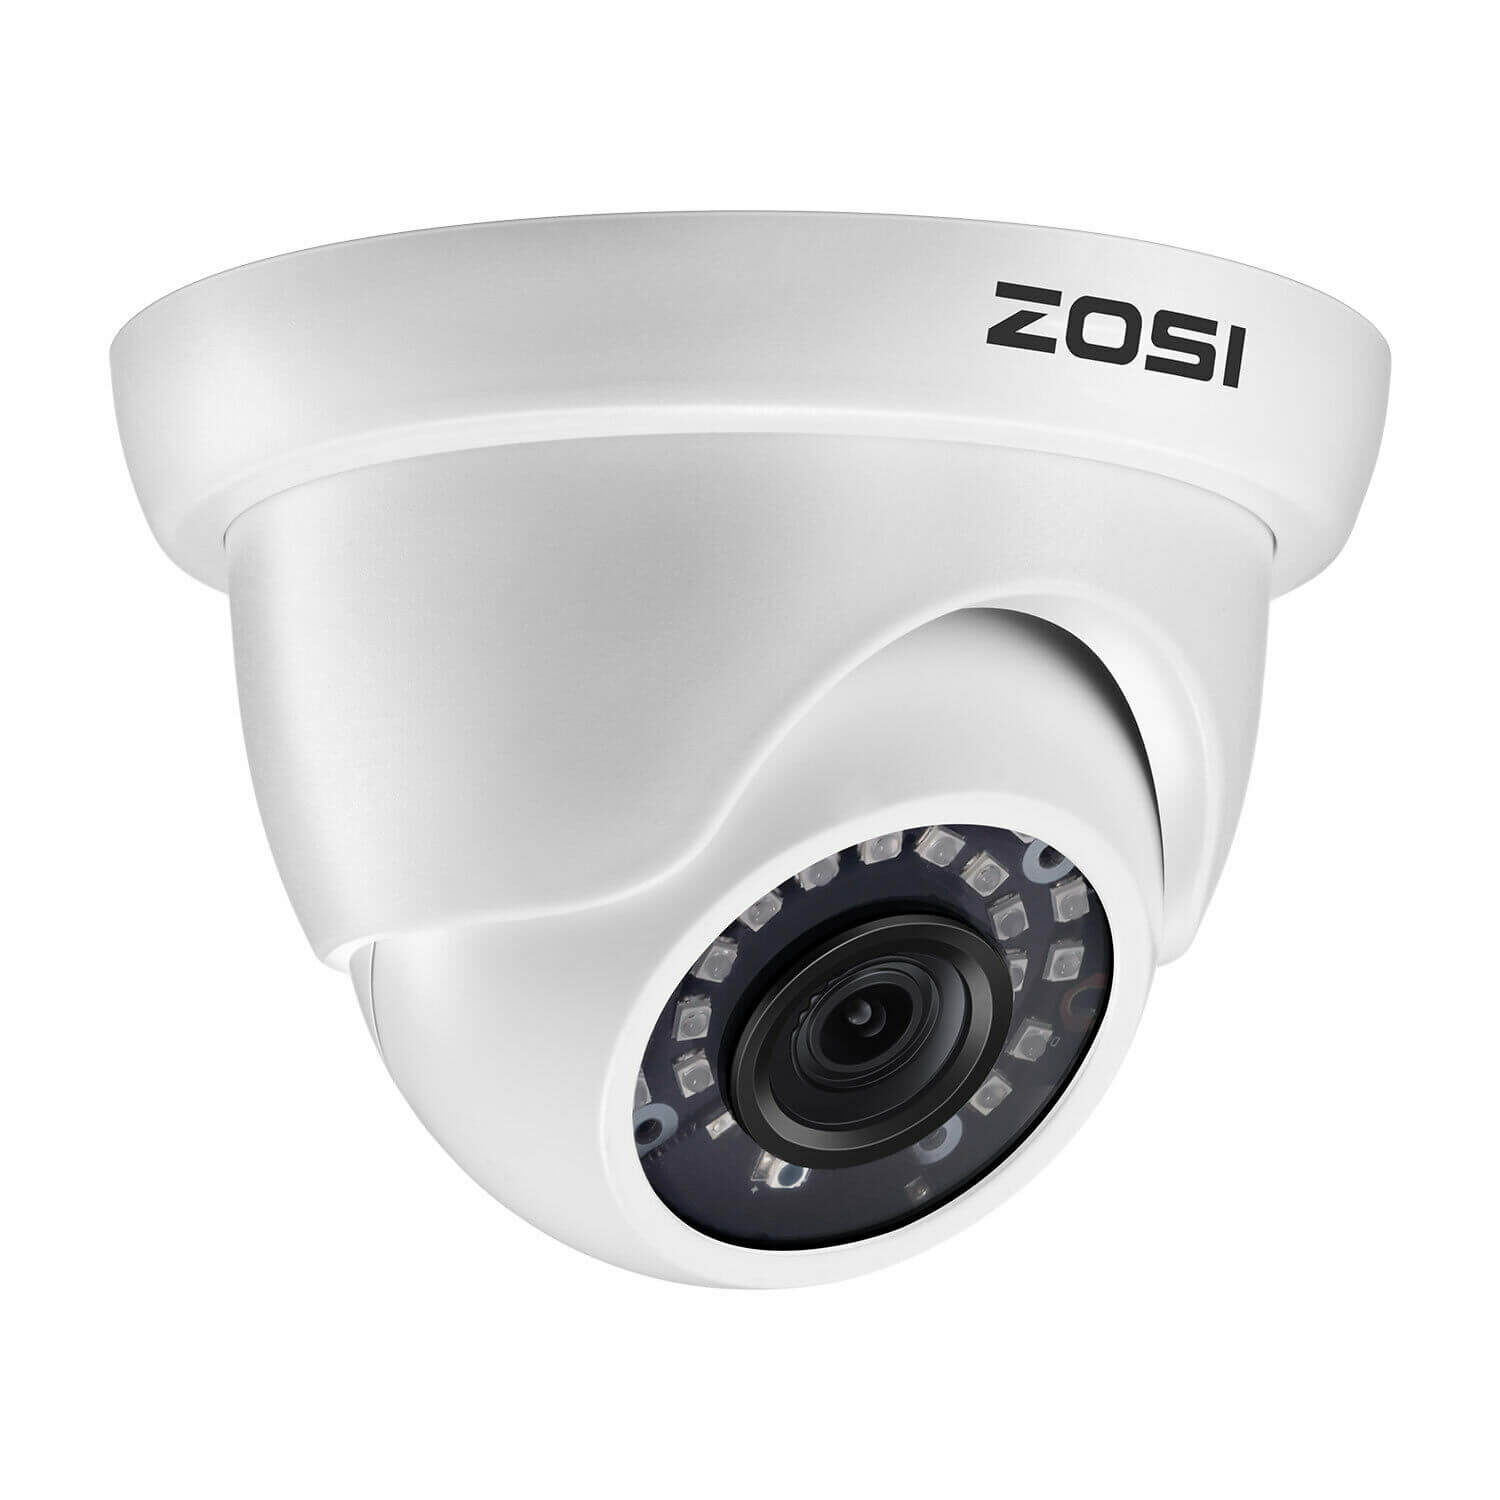 1080P Dome Camera, 80ft Infrared Night Vision, Compatible with TVI CVI AHD CVBS Security DVR